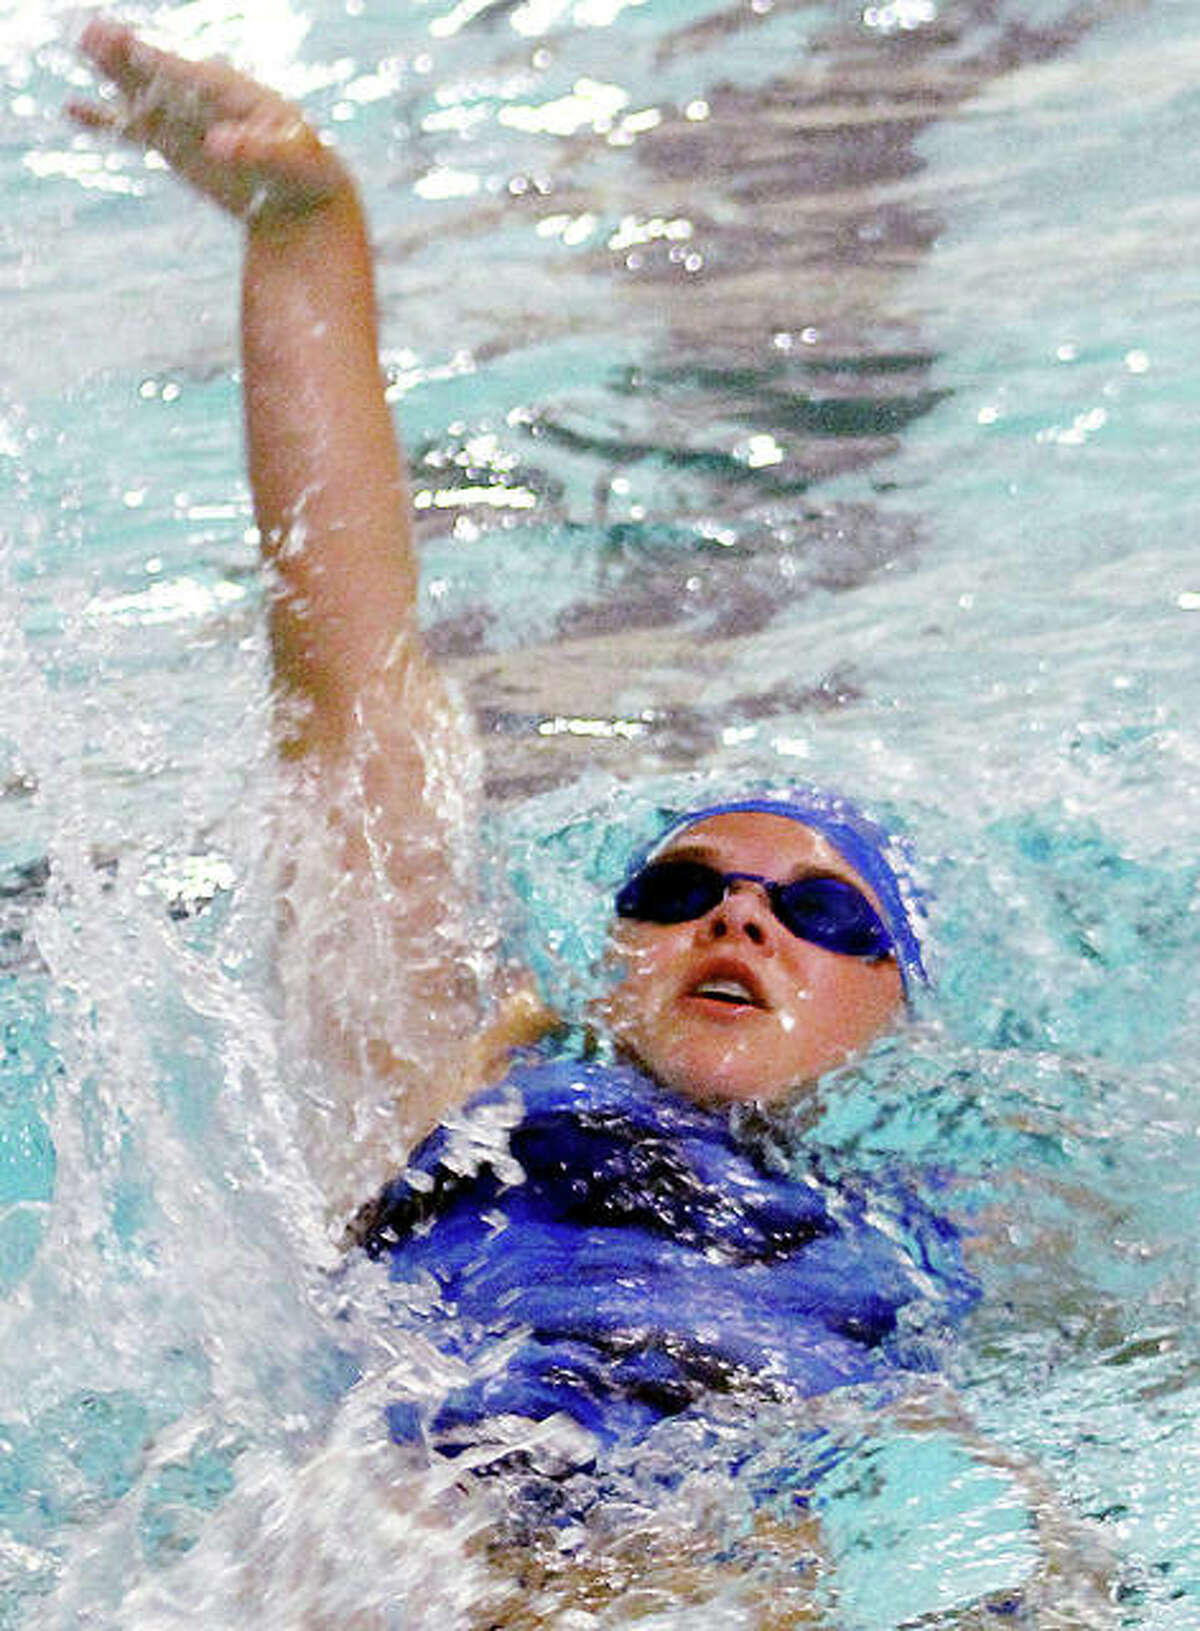 Freshman Grace Middleton is one of 12 swimmers from Alton High who will take part in a five-way meet Saturday in at the Chuck Fruit Aquatic Center in preparation for the IHSA Girls Sectional Meet, also in Edwardsville, set for Oct. 24